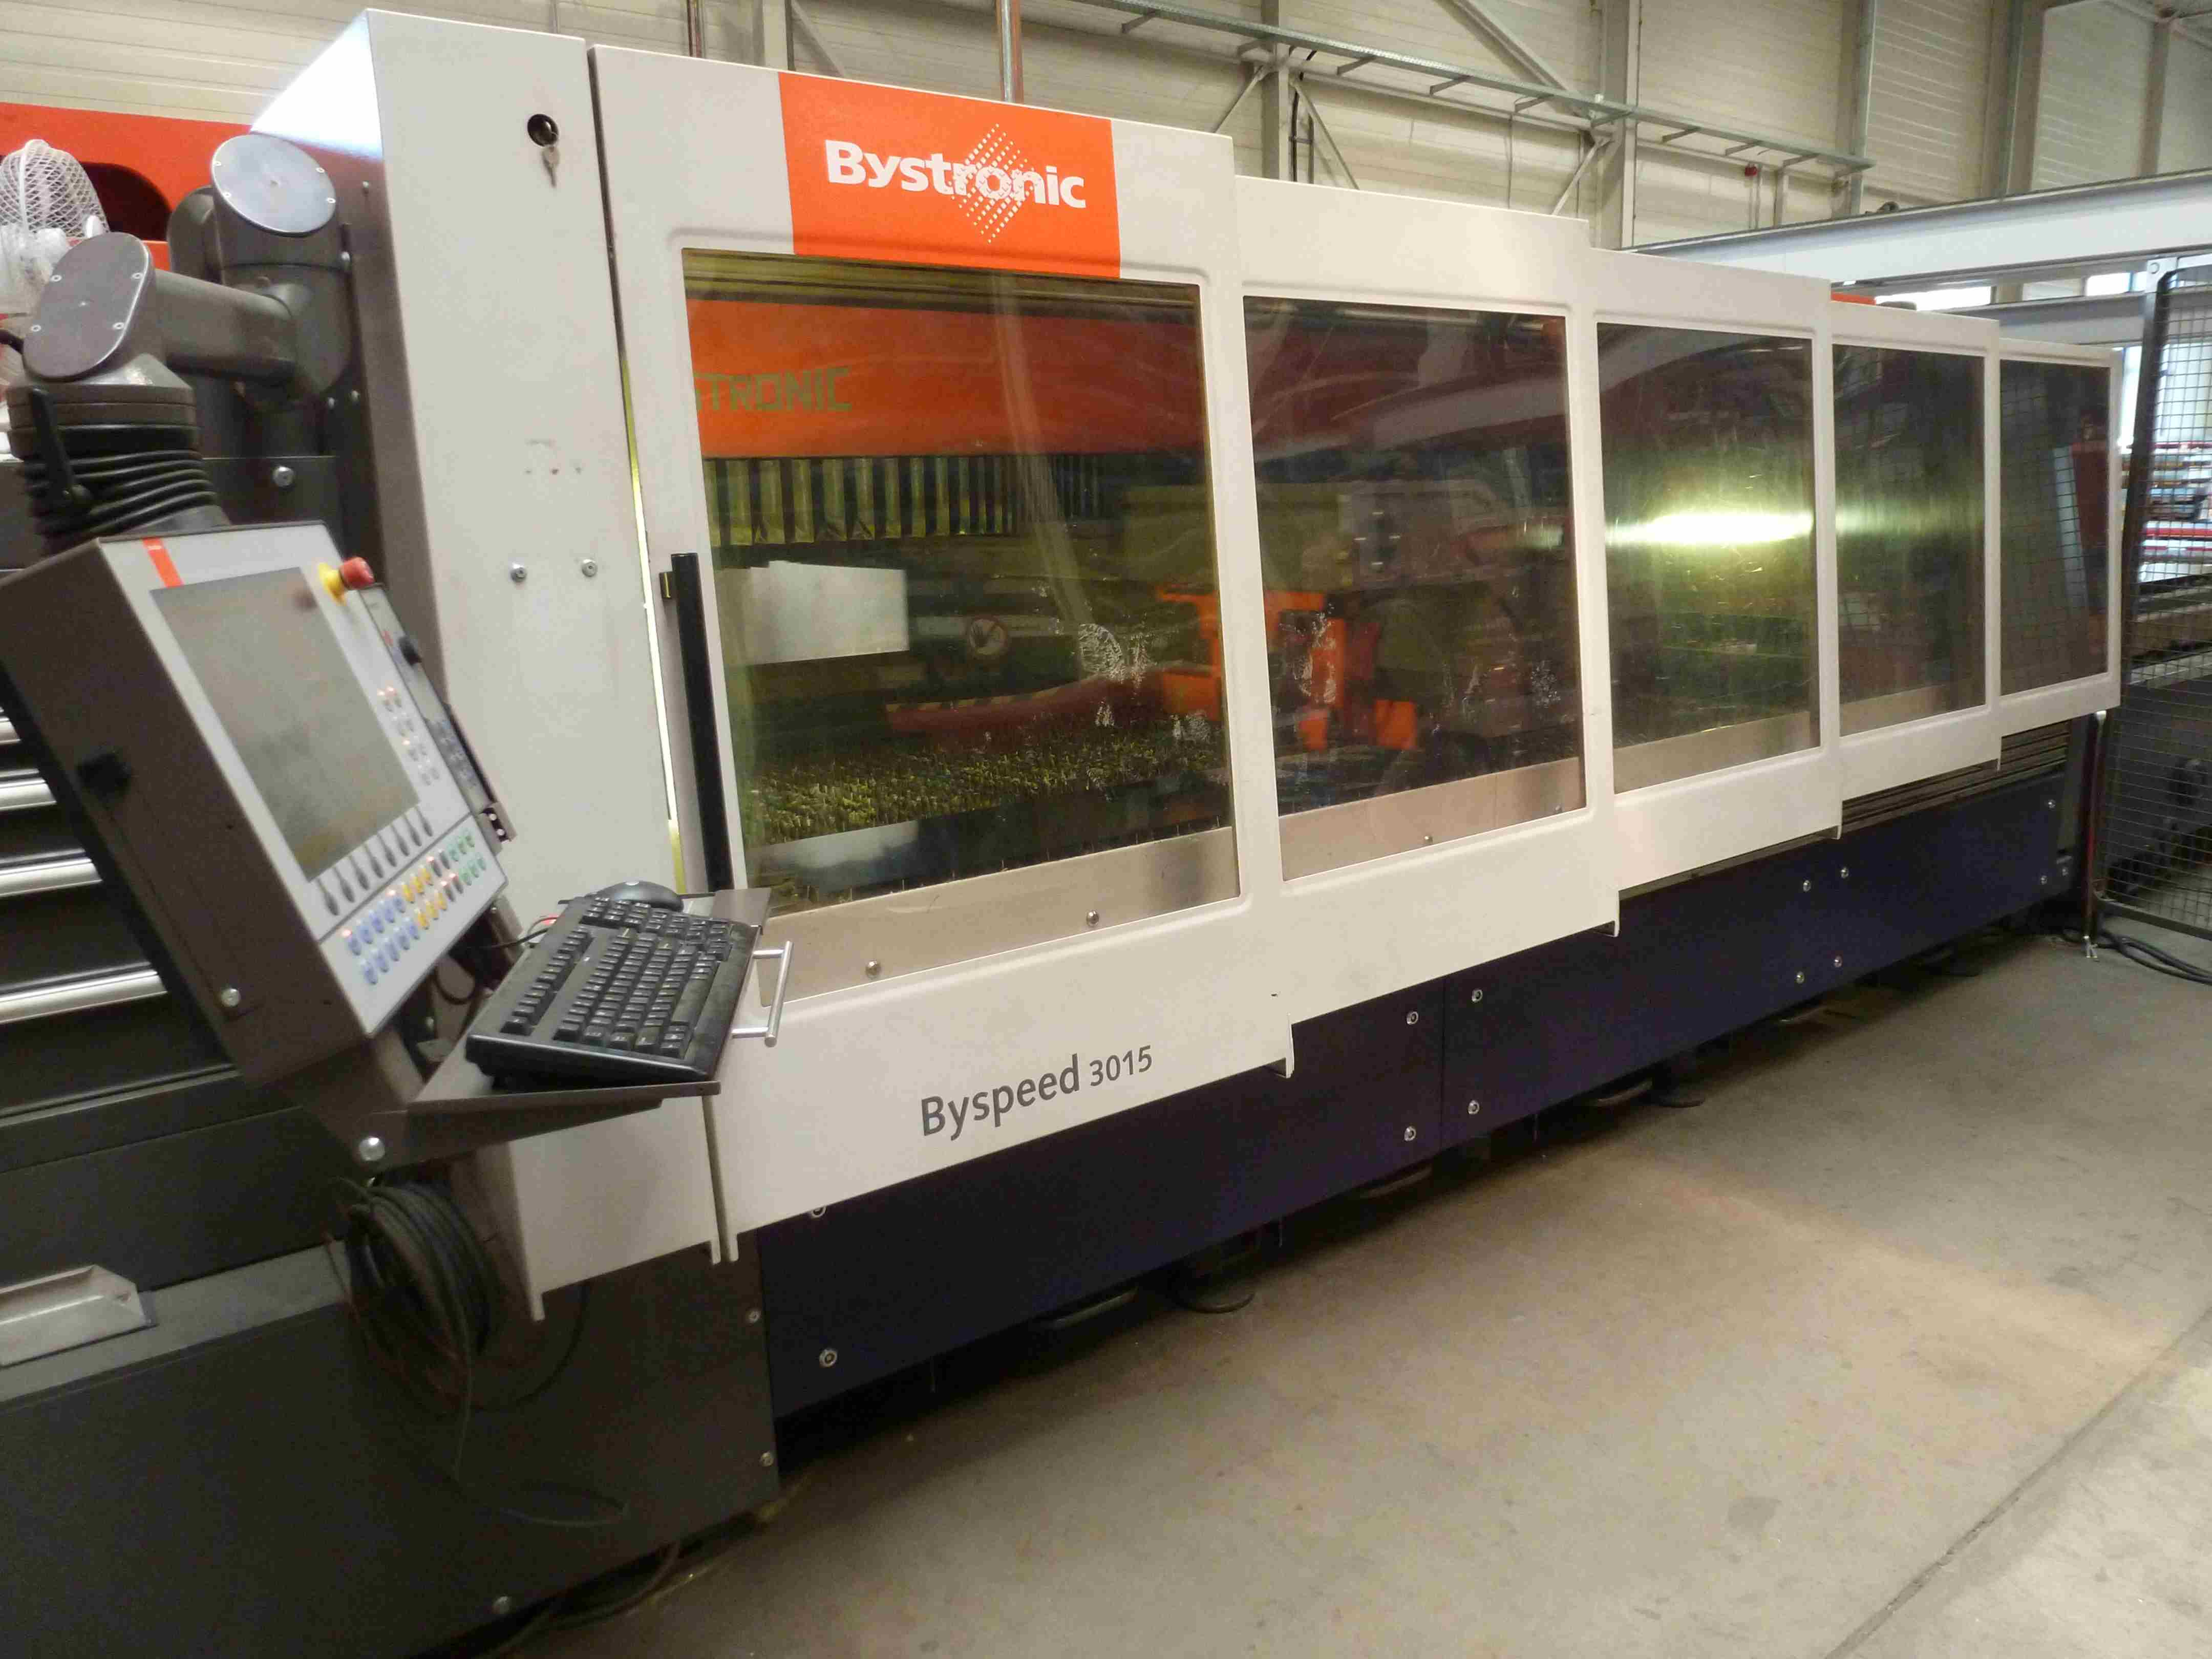 Bystronic Byspeed 3015 Laser Cutting Machine Exapro